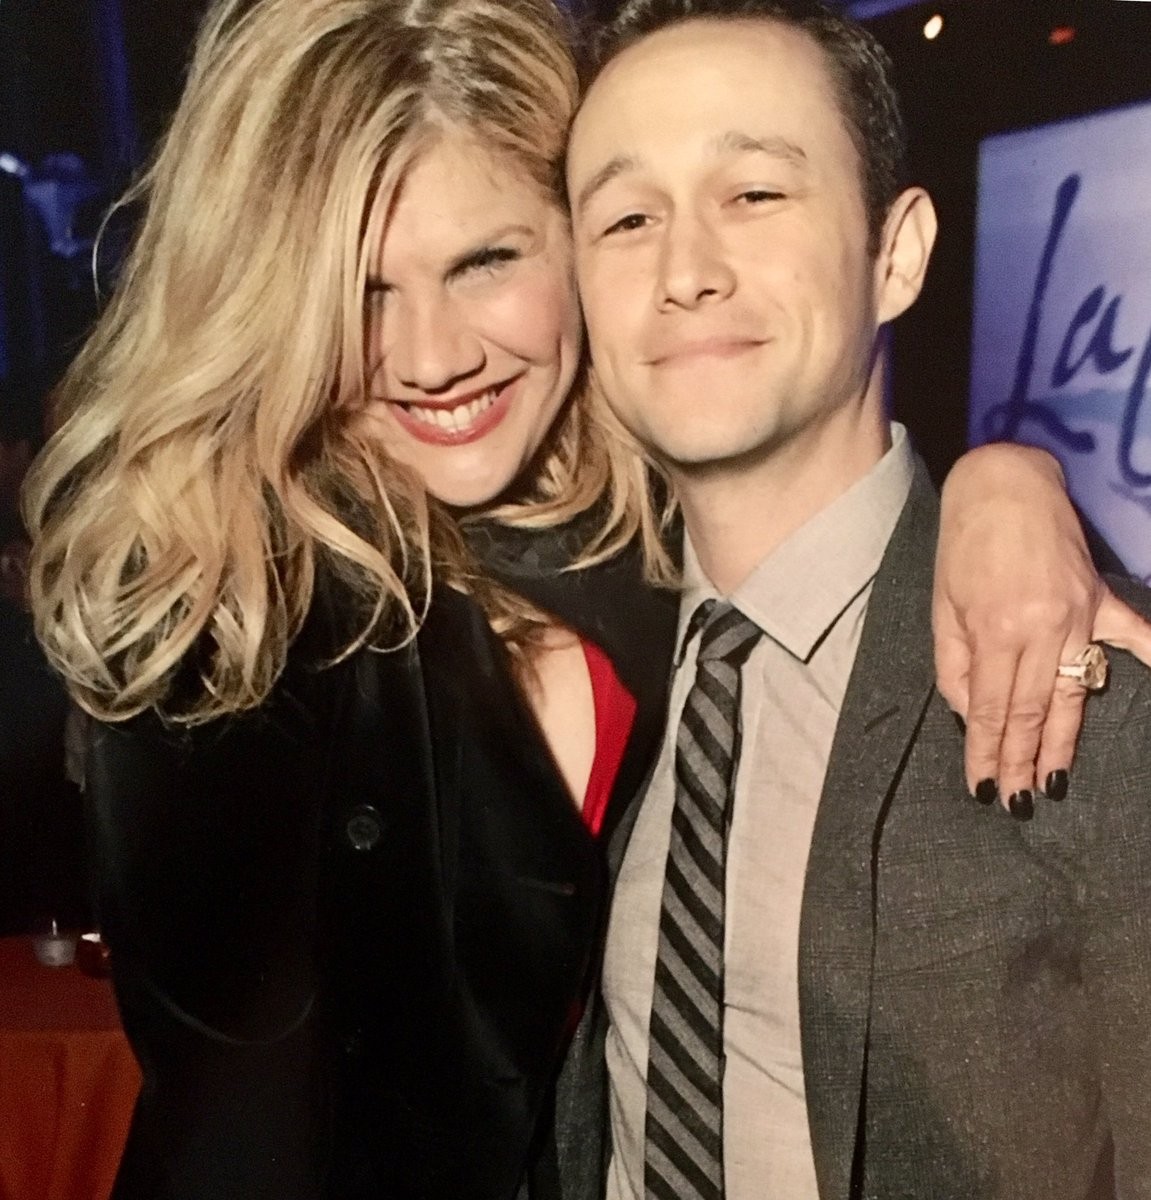 My brother @hitRECordJoe.  I'm so proud of the man he turned out to be. #FlashbackFriday <br>http://pic.twitter.com/JDaJQRoGcr